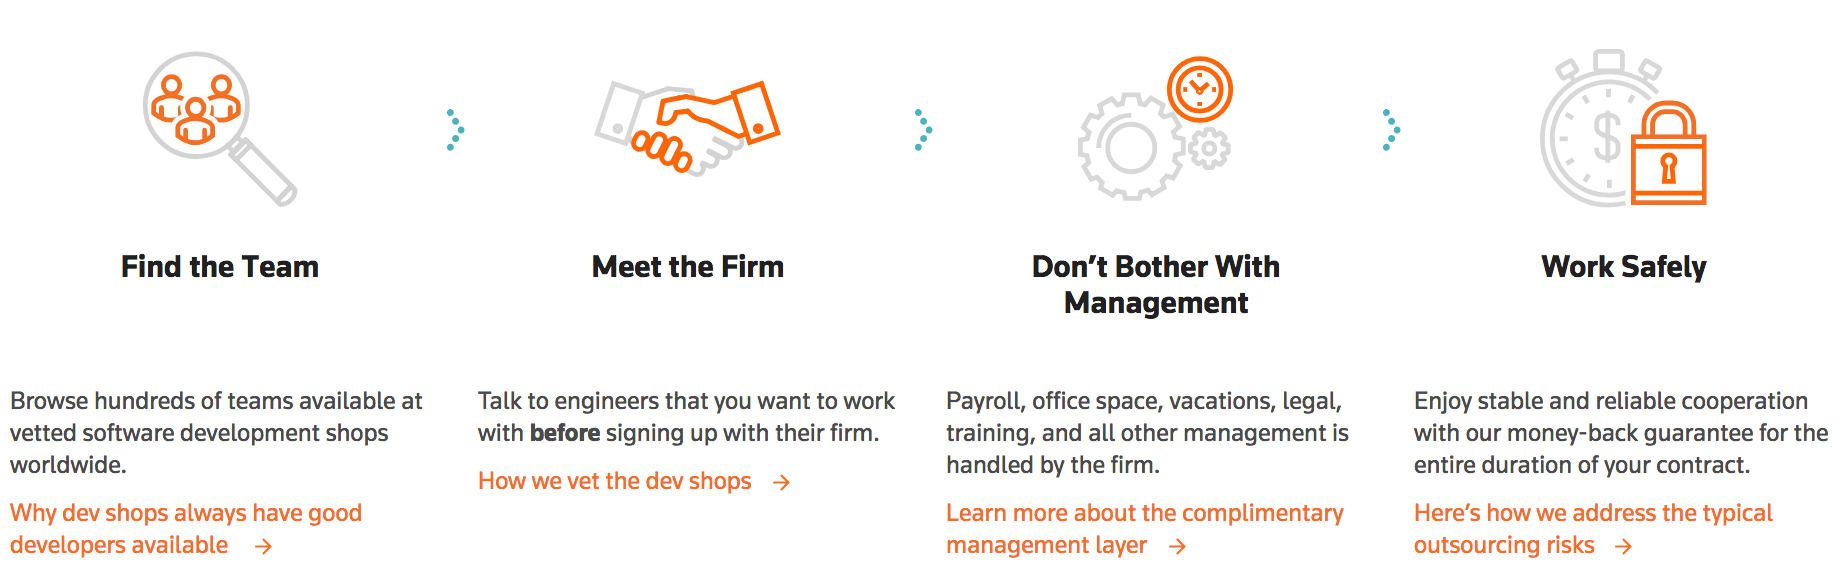 How YouTeam works